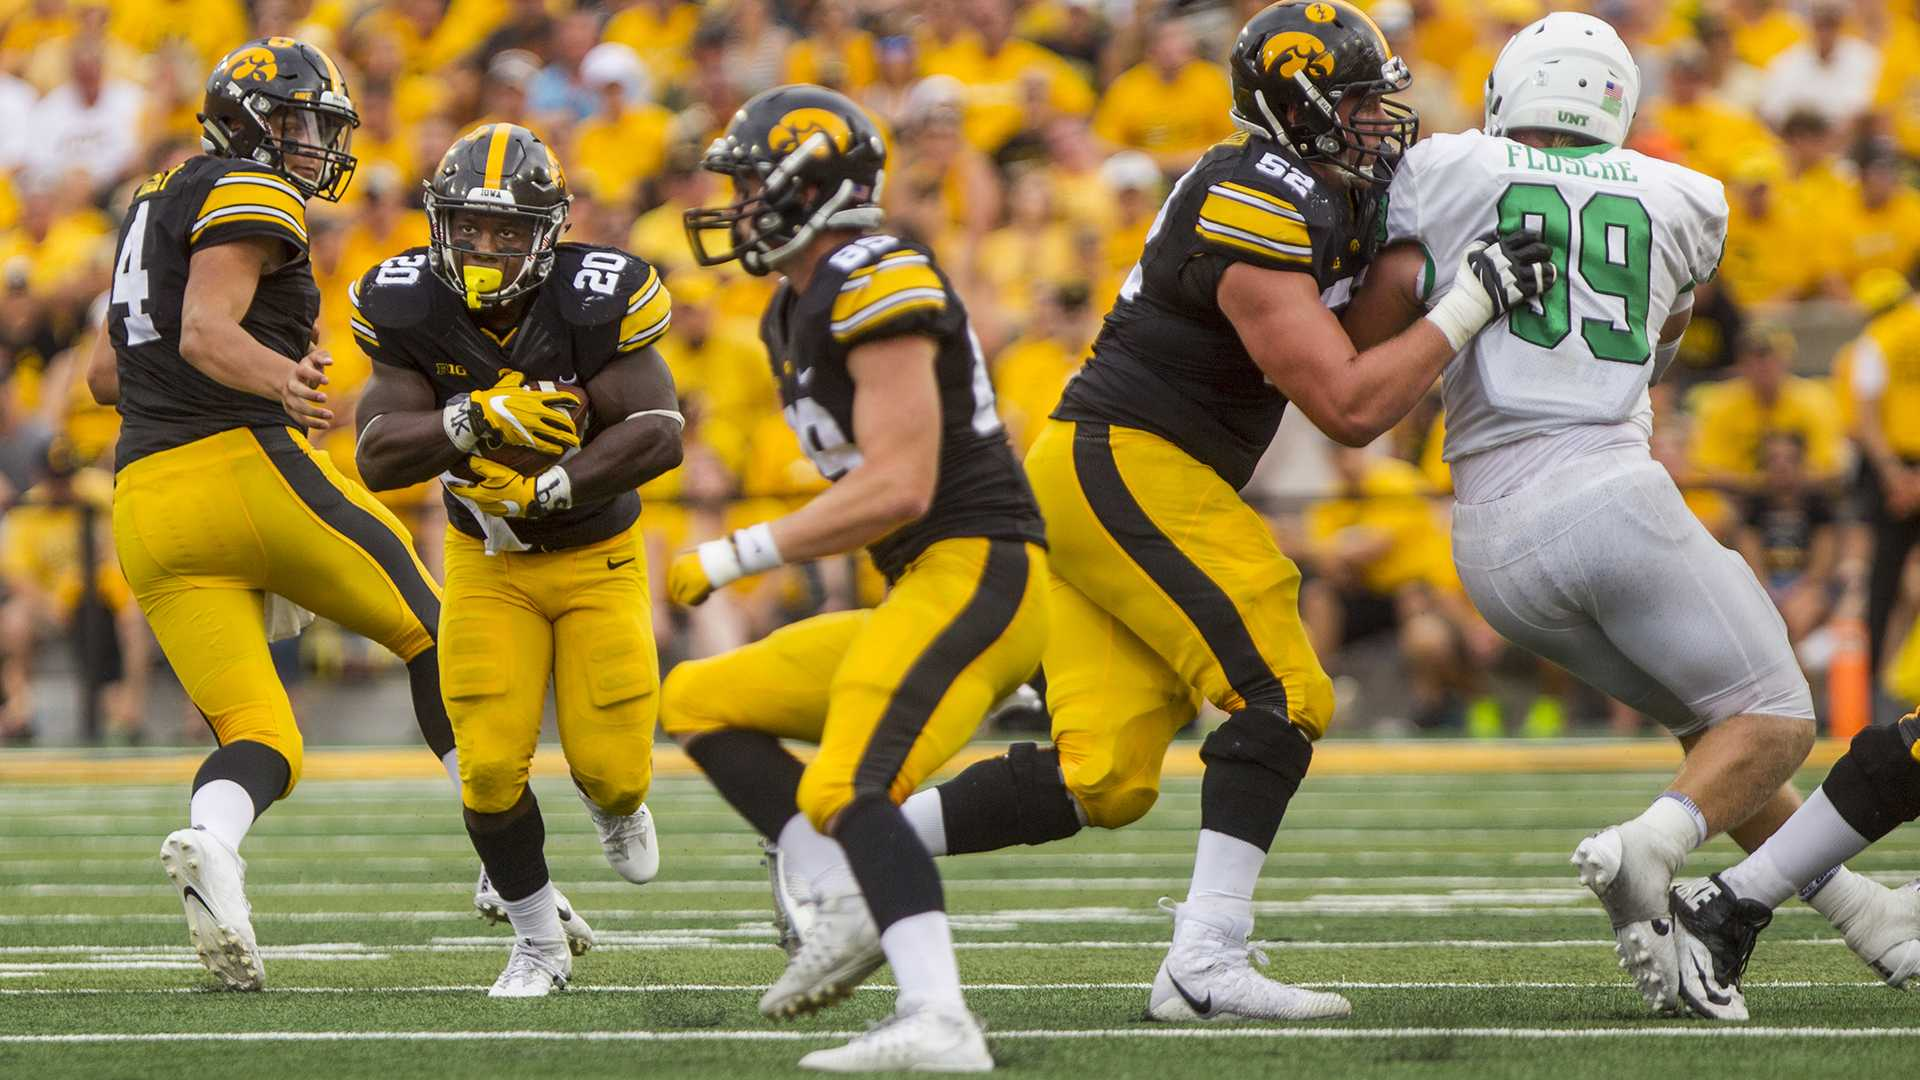 Iowa's James Butler carries the ball during the game between Iowa and North Texas at Kinnick Stadium on Saturday Sept. 16, 2017. Iowa won 31-14. (Nick Rohlman/The Daily Iowan)